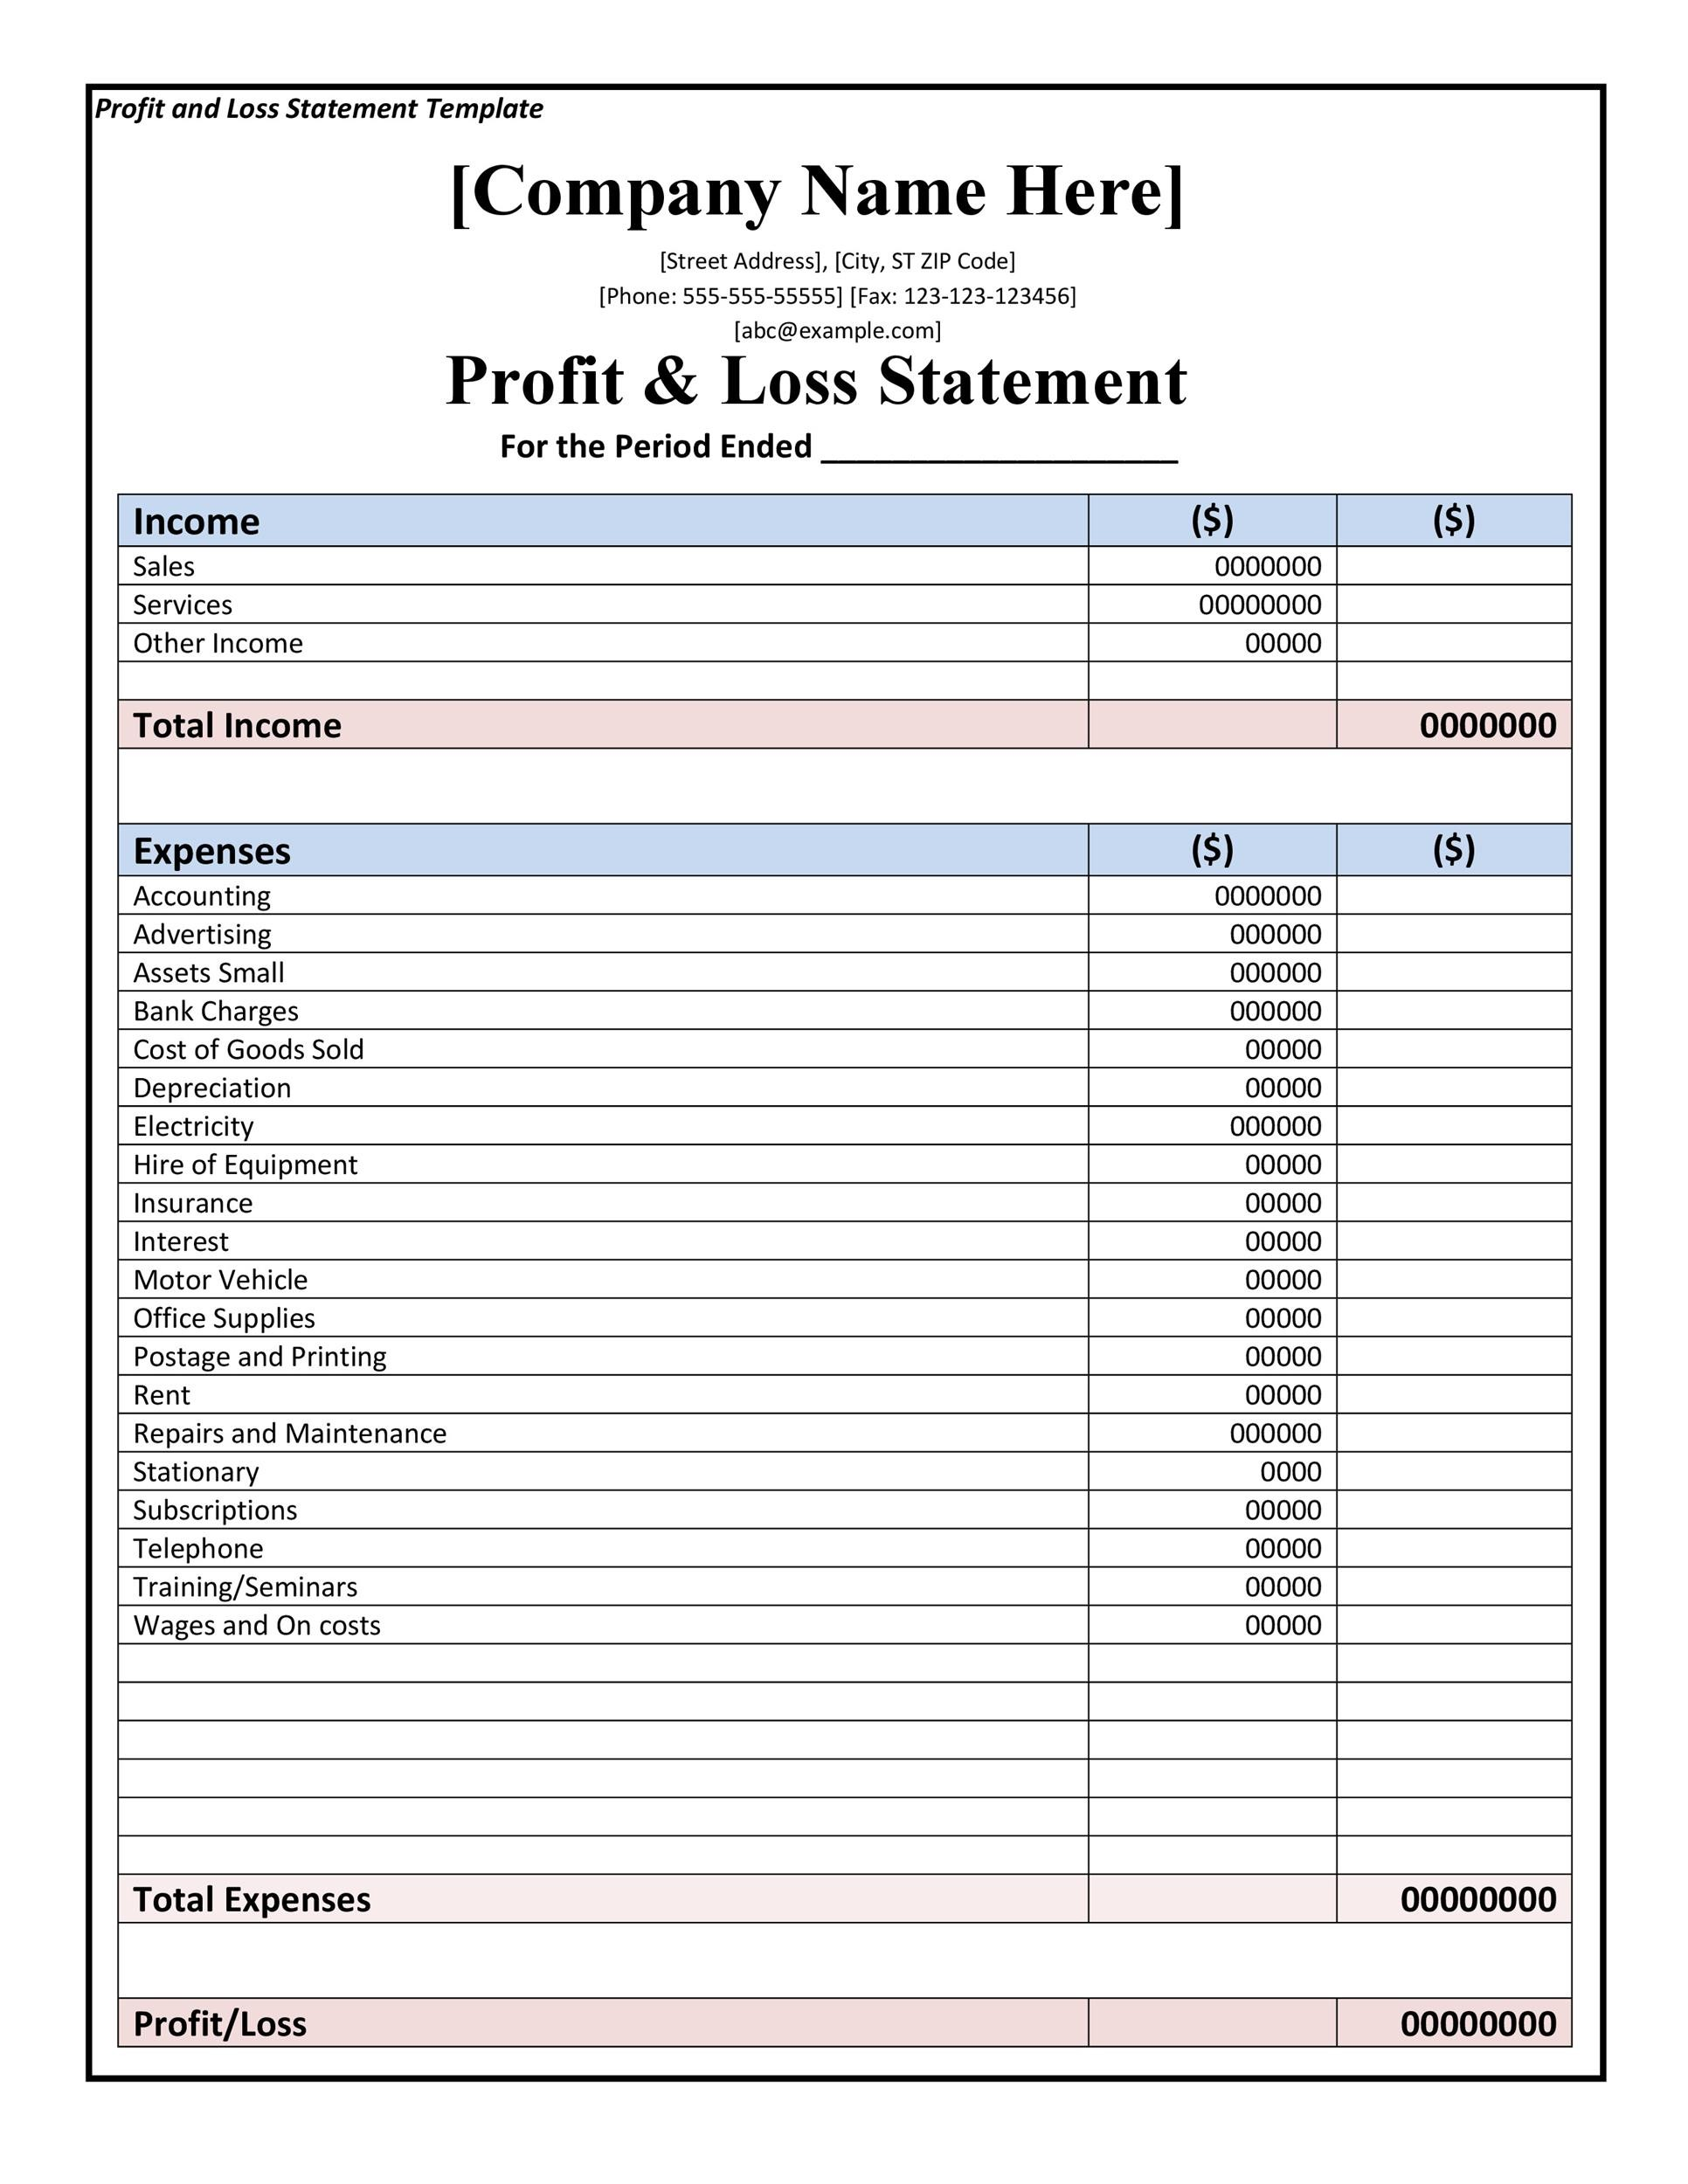 Profit and Loss Statement 37